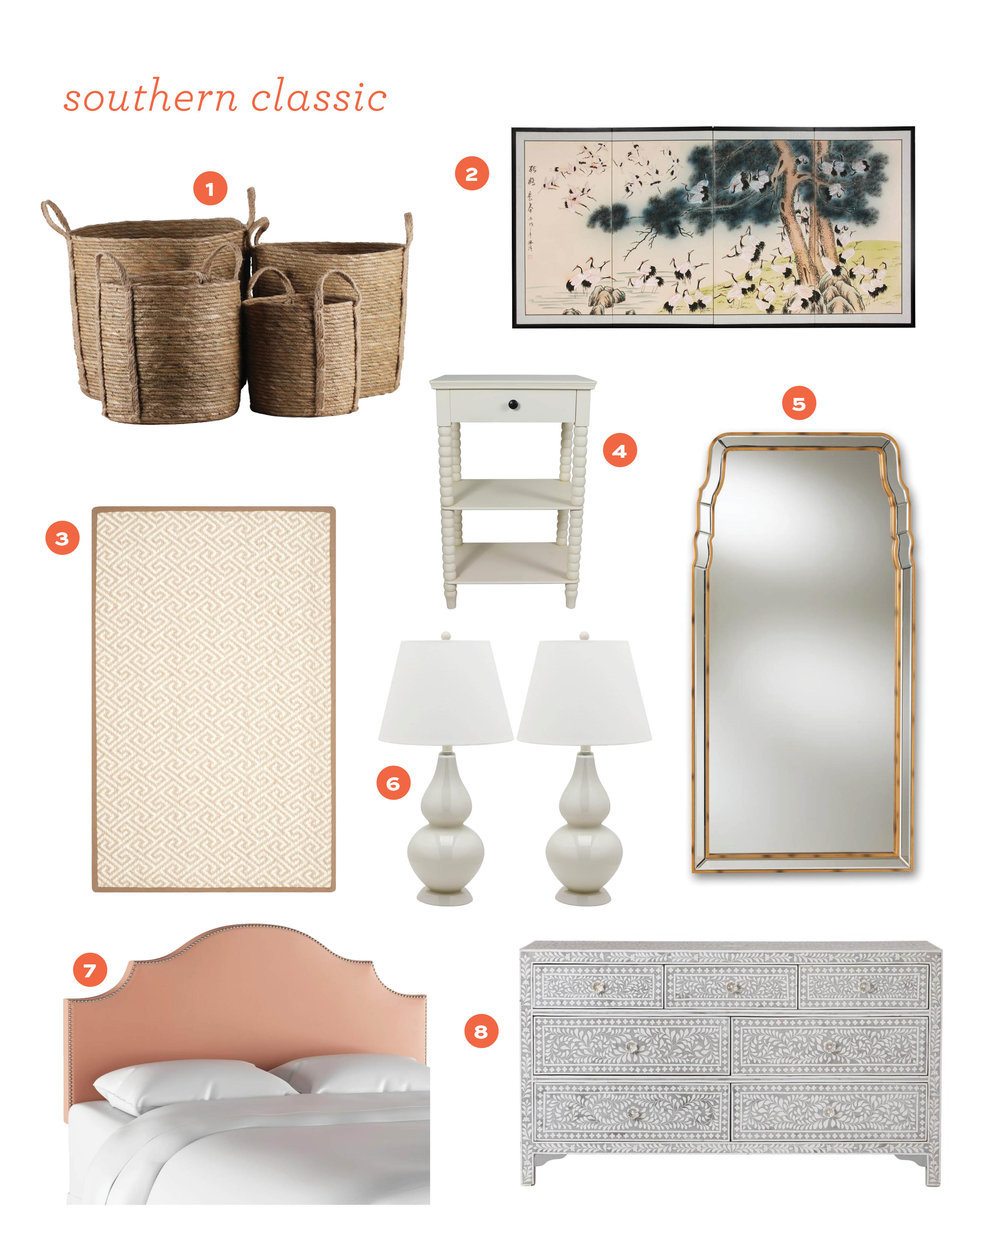 1.  natural baskets  2.  silk panels  3.  geometric rug  4.  spindle side table  5.  curvilinear mirror  6.  pearl gray lamps  7.  upholstered headboard  8.  bone inlay dresser